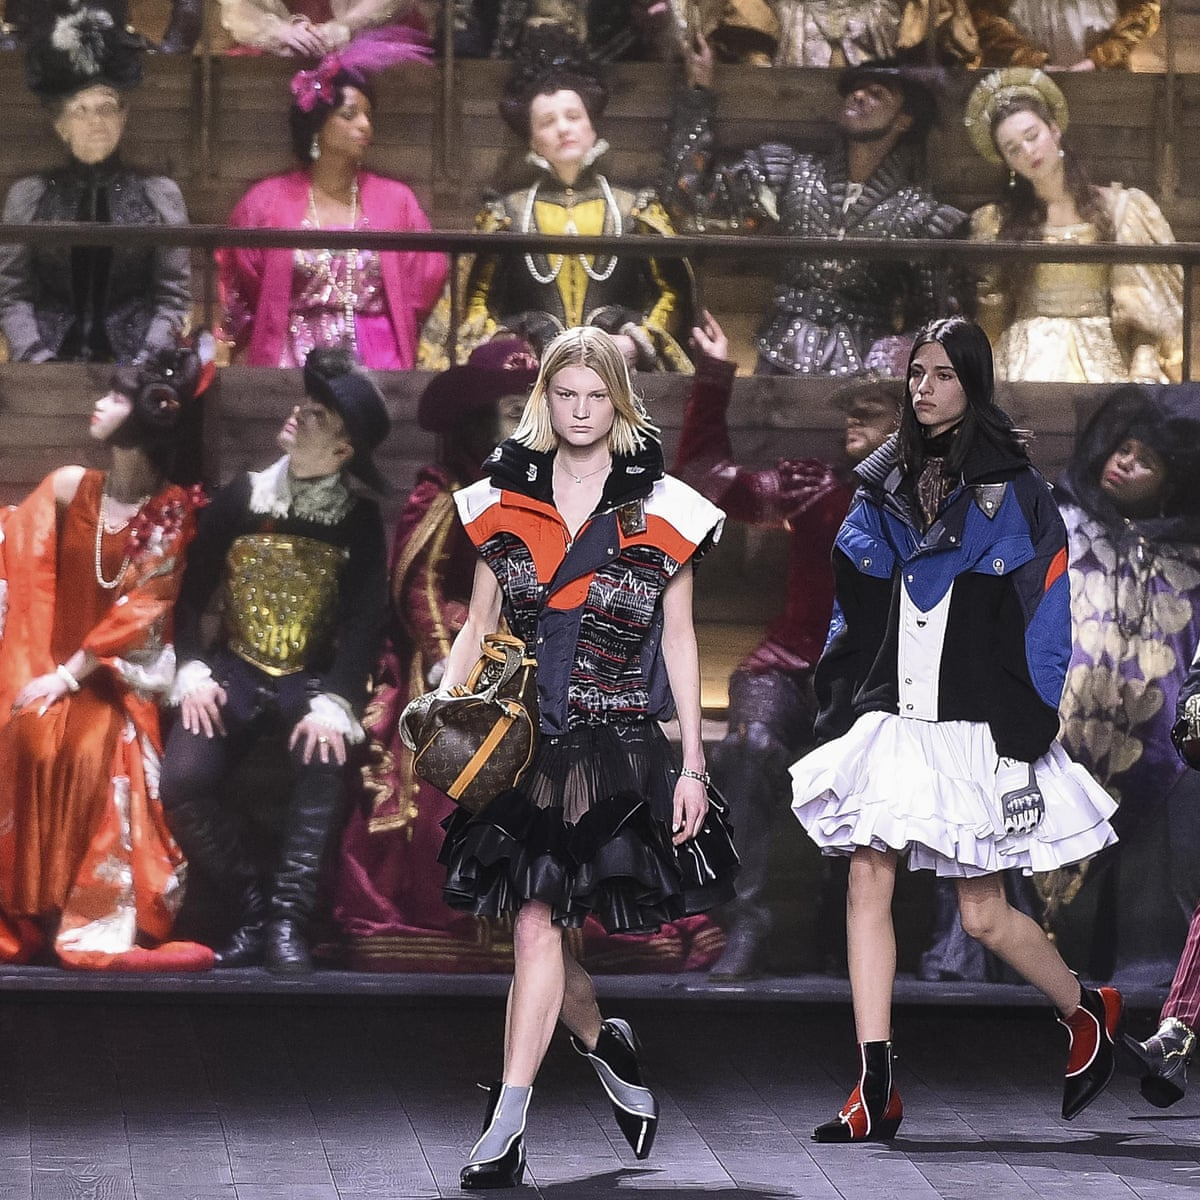 Louis Vuitton Spurns Coronavirus Fears With Dramatic Closing Show At Louvre Fashion The Guardian